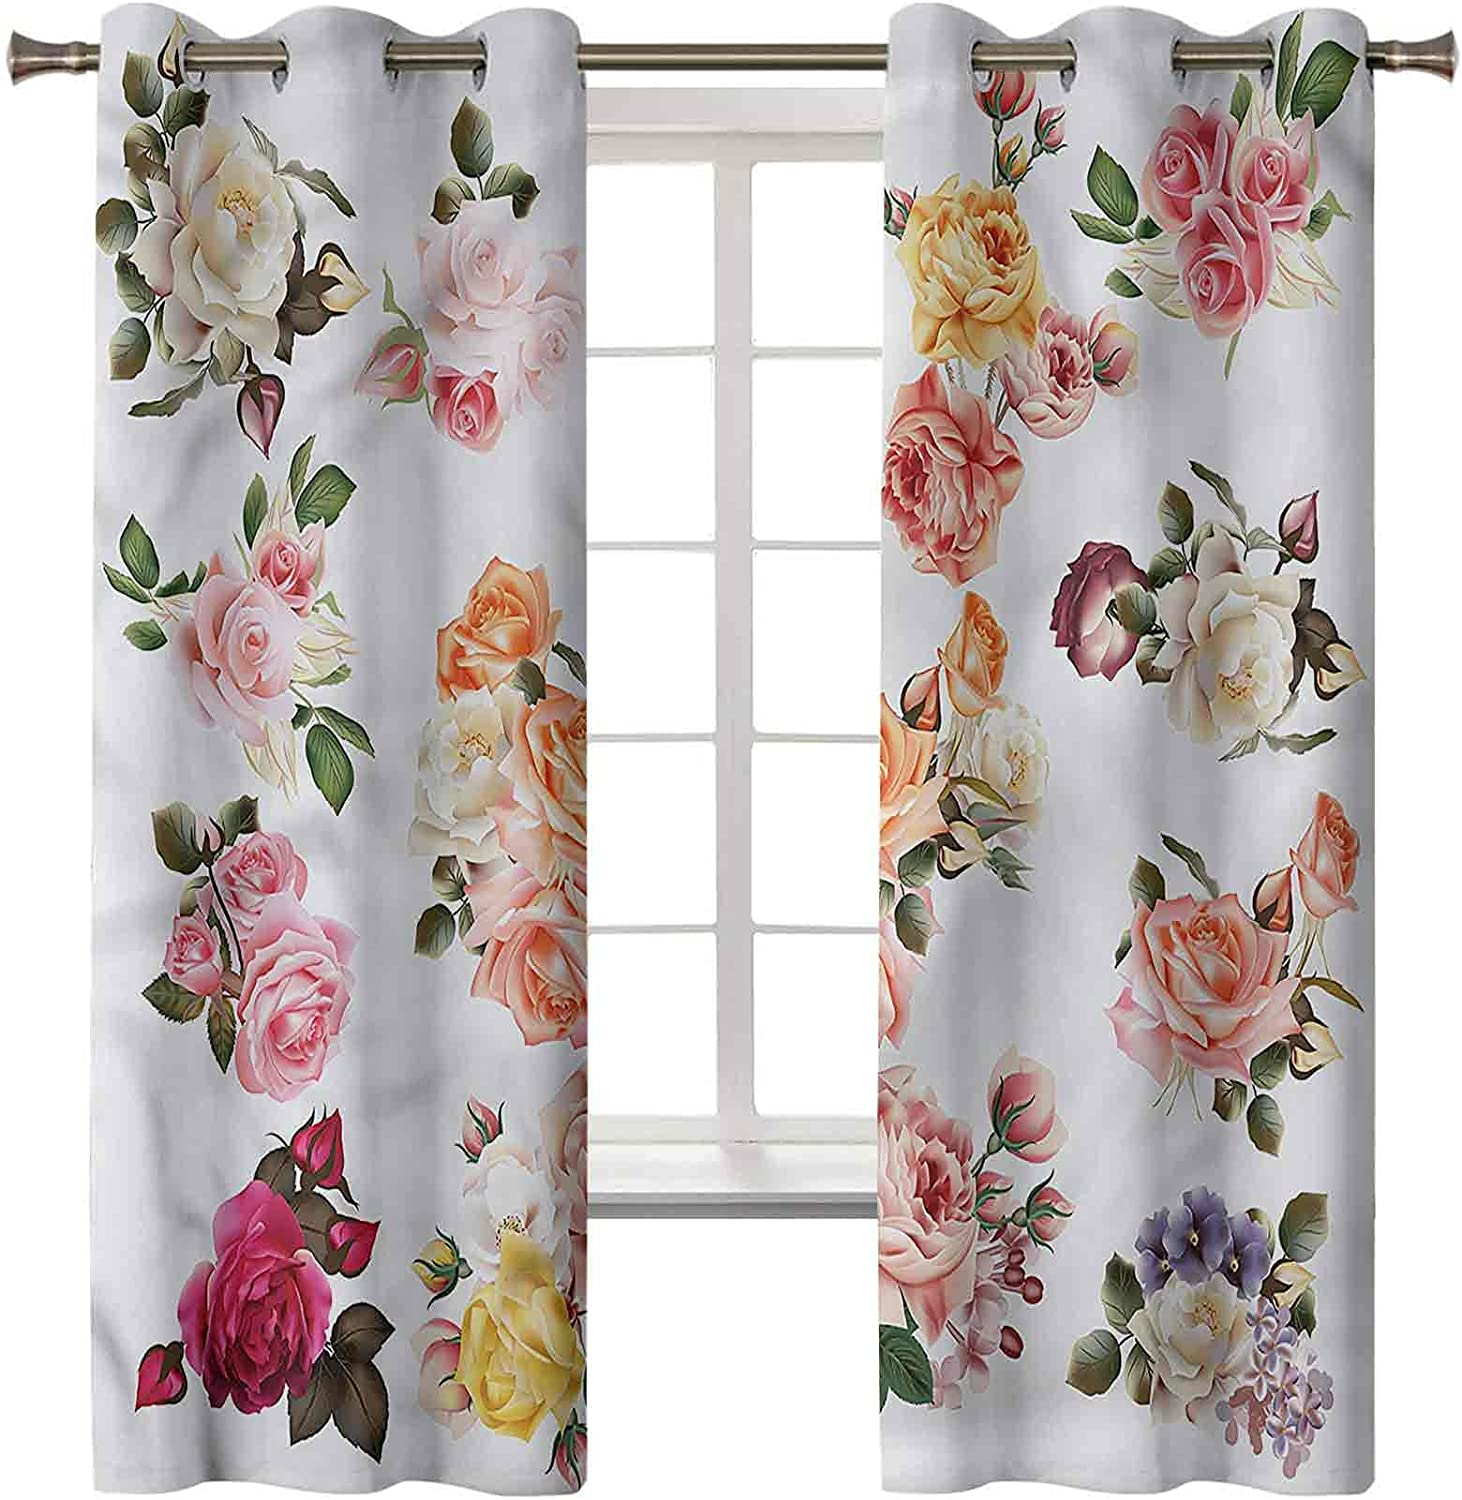 Flower Curtains for Bedroom Set of 2 Panels 63L x Farm Easy-to-use 42W Ranking TOP7 Inch